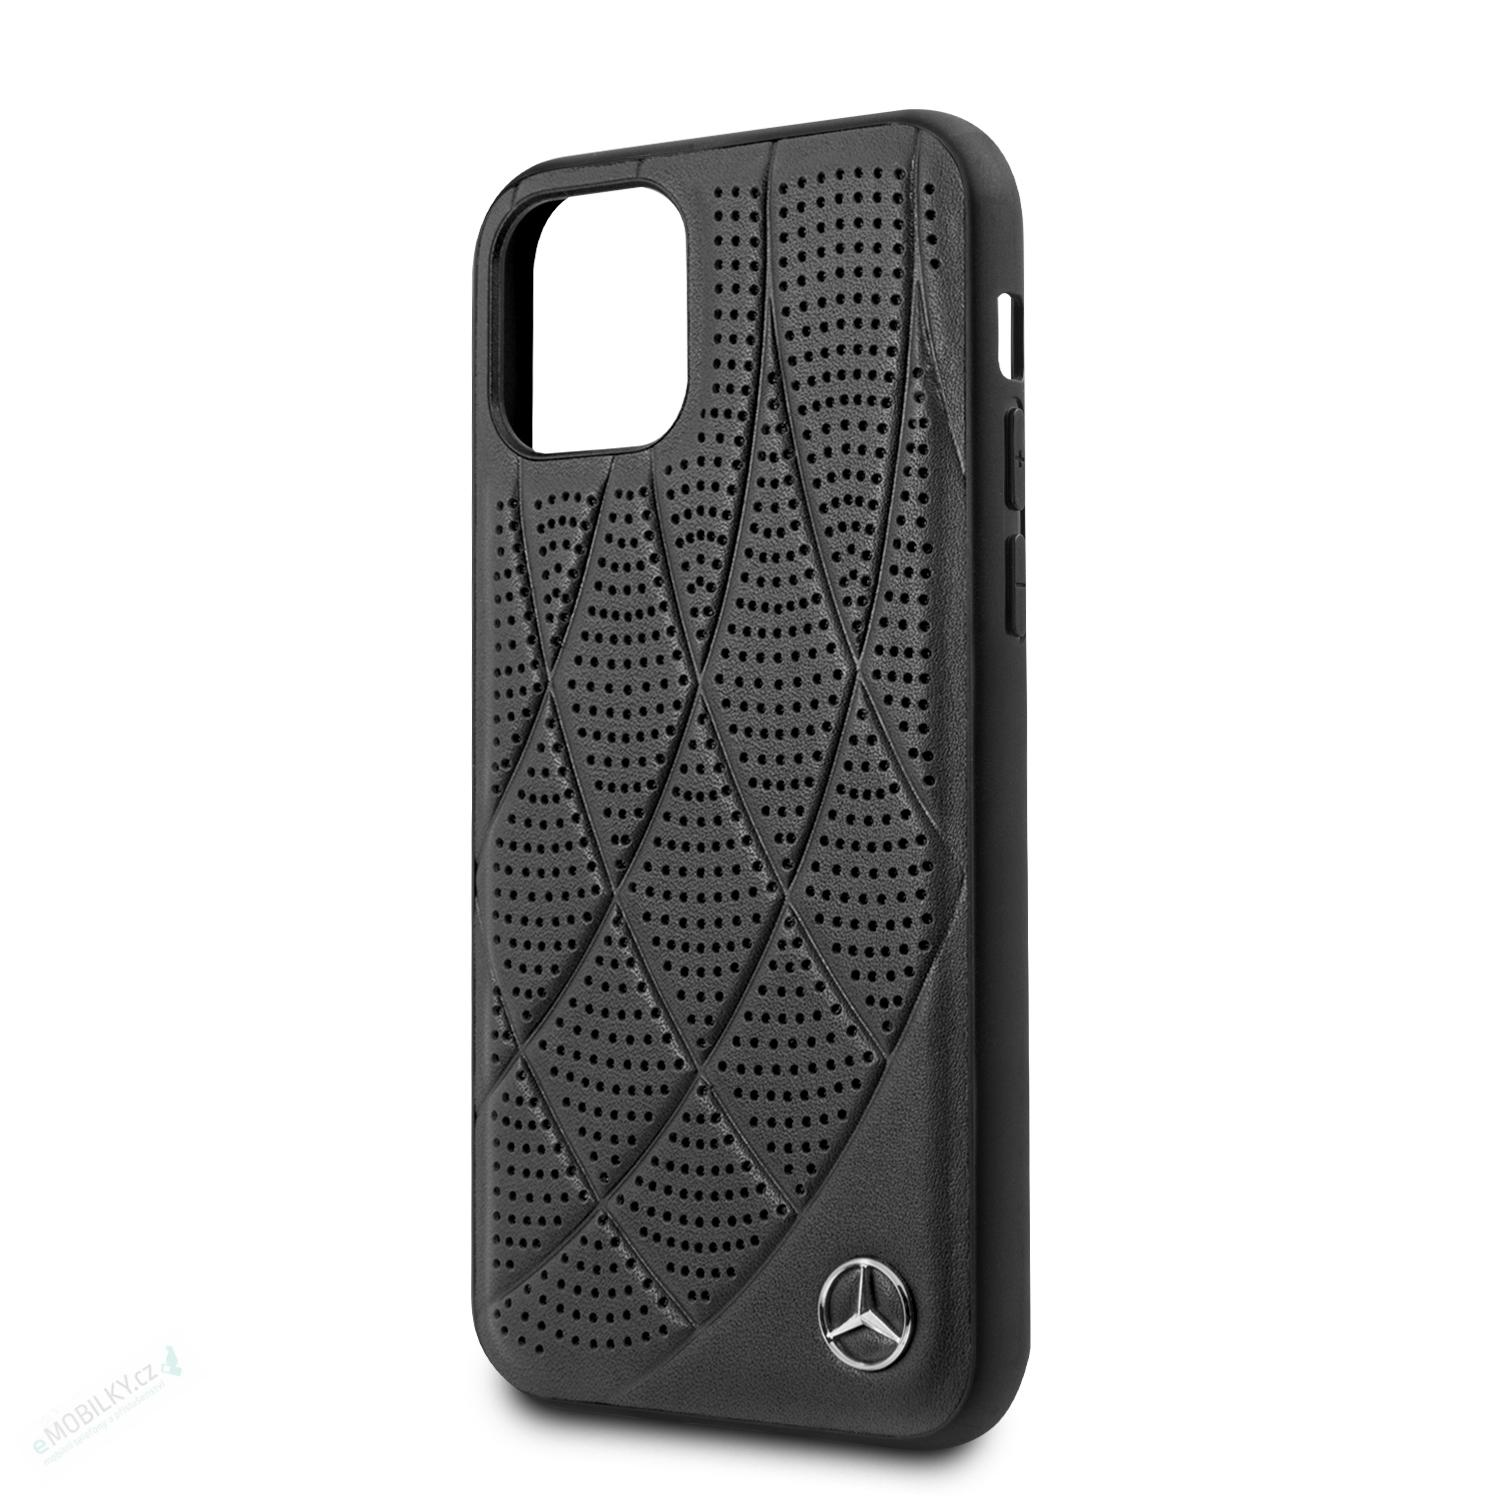 MEHCN58DIQBK Mercedes Perforated Leather Zadní Kryt pro iPhone 11 Pro Black